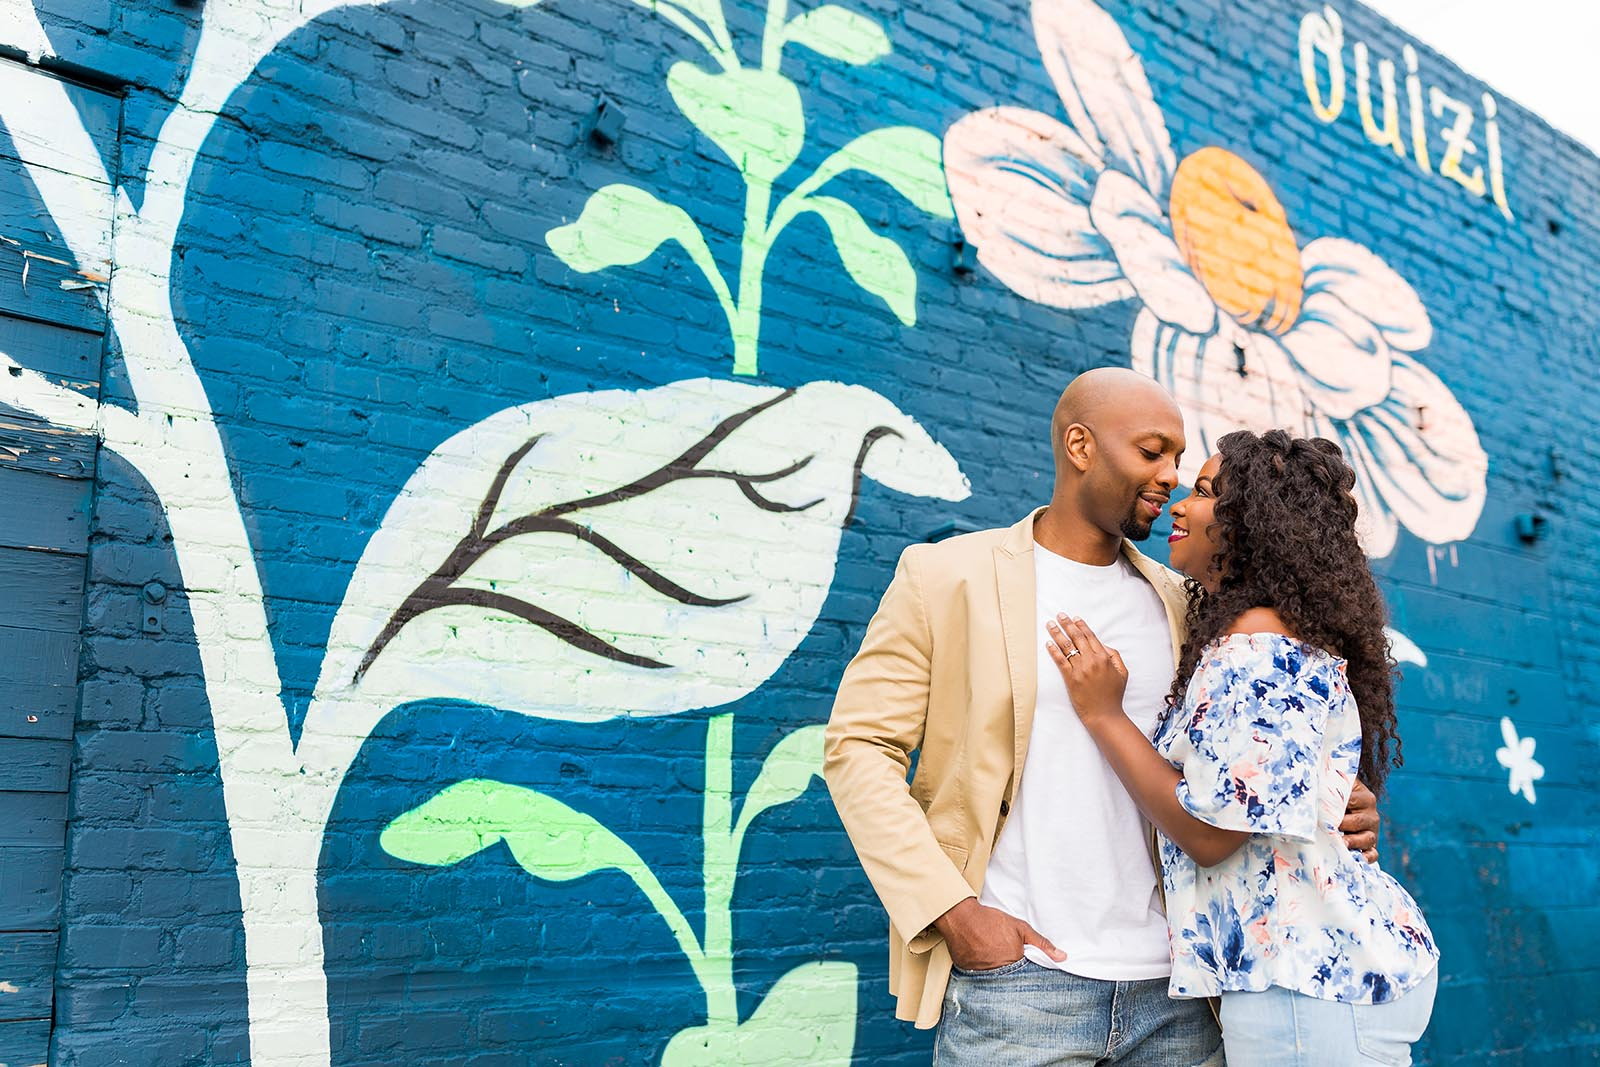 Couple photos in front of painted wall by Mecca Gamble